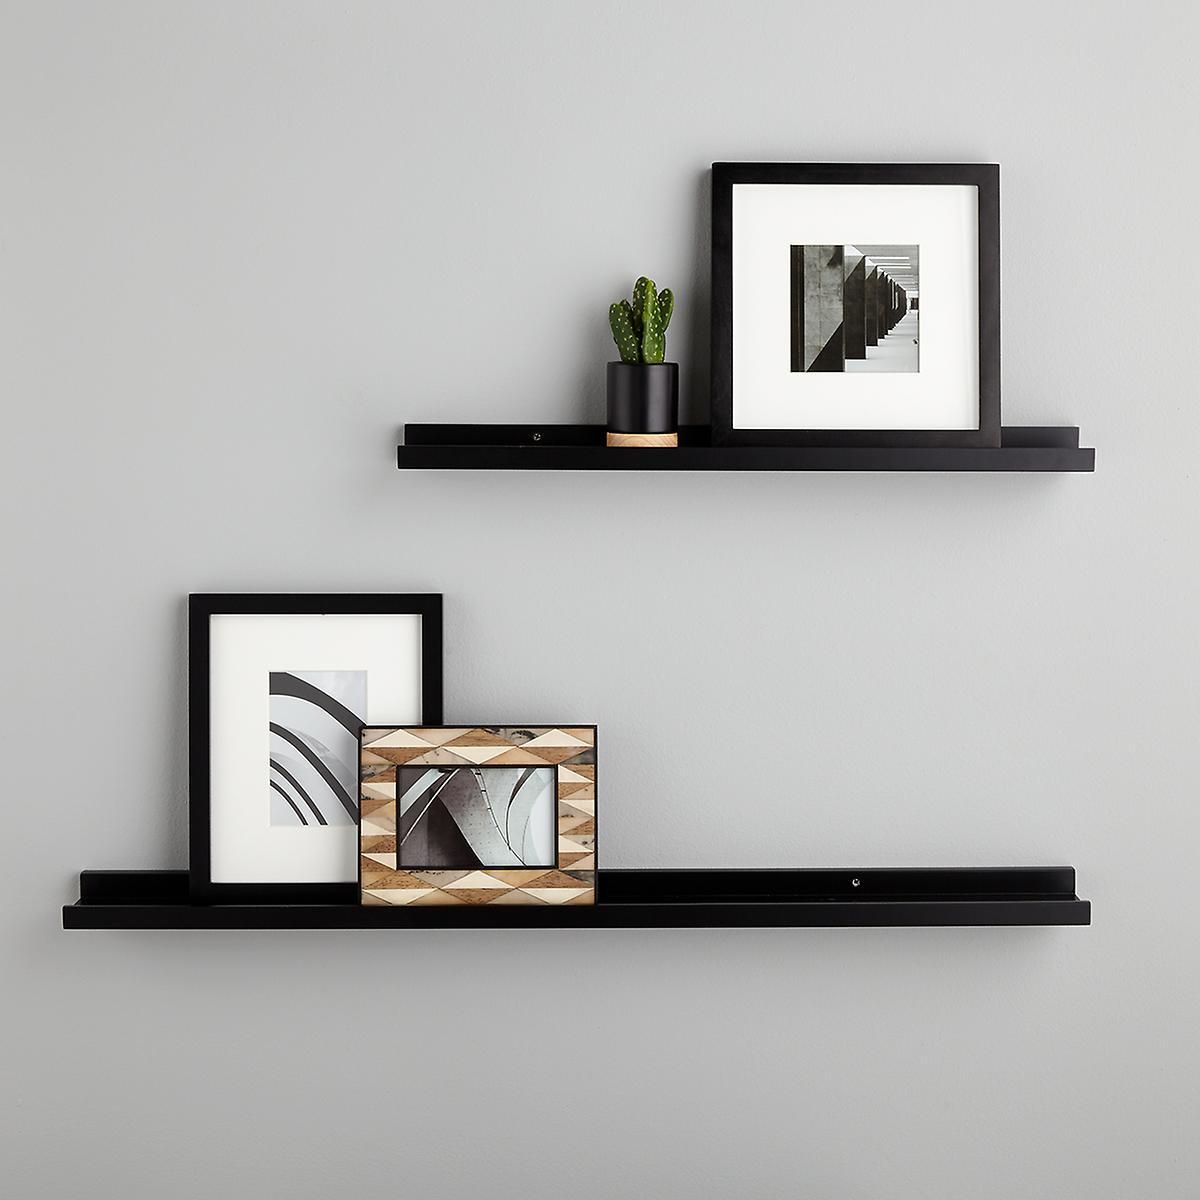 black ledge wall shelves the container shelf floating makeup screws for hanging garage shelving bracket ideas carrara marble corner storage chrome brackets home welder bathroom